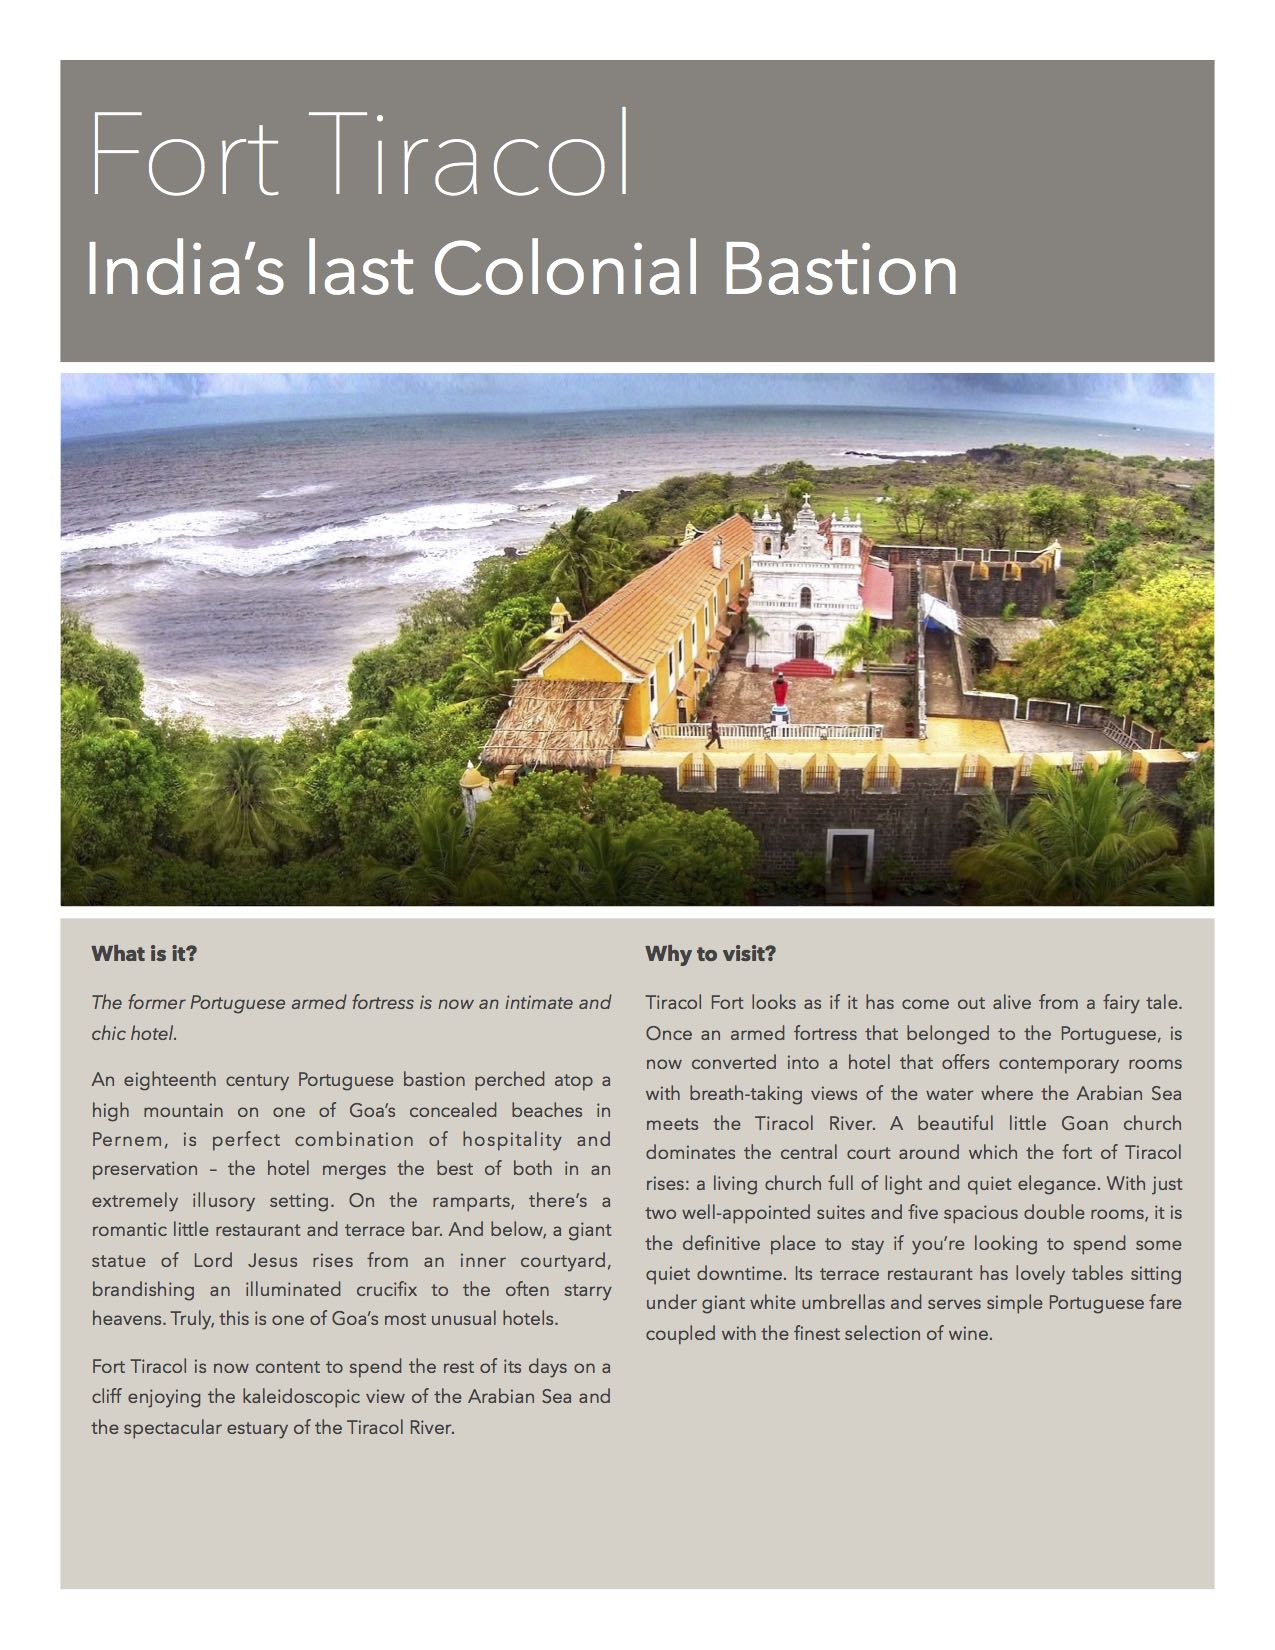 Fort Tiracol - Your stay in Goa, India